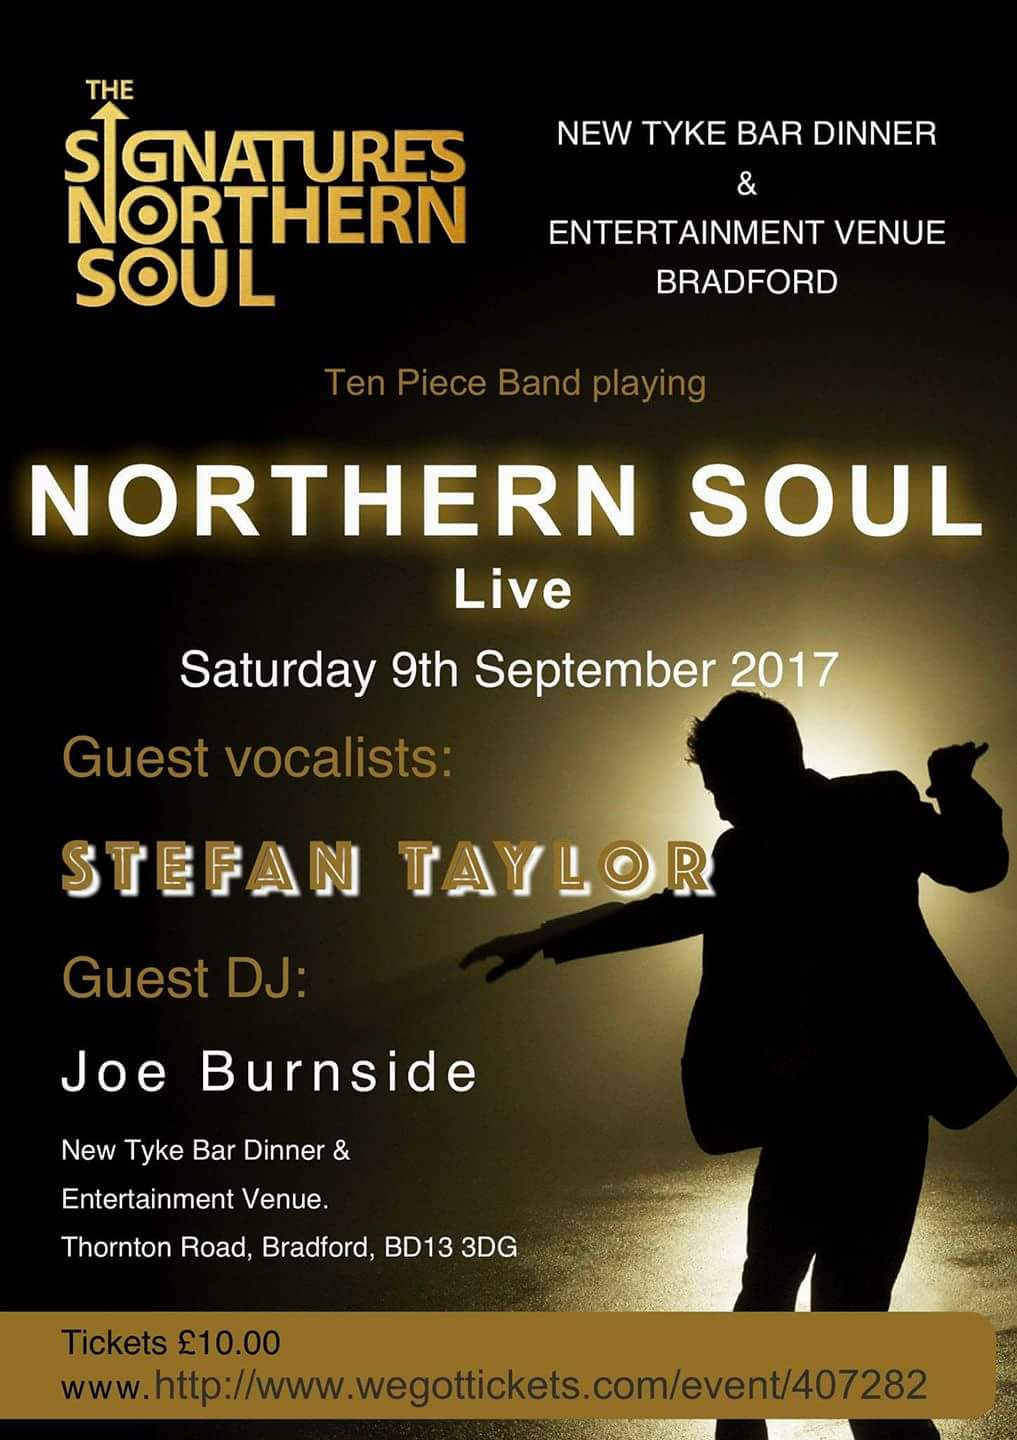 Signatures Northern Soul Live